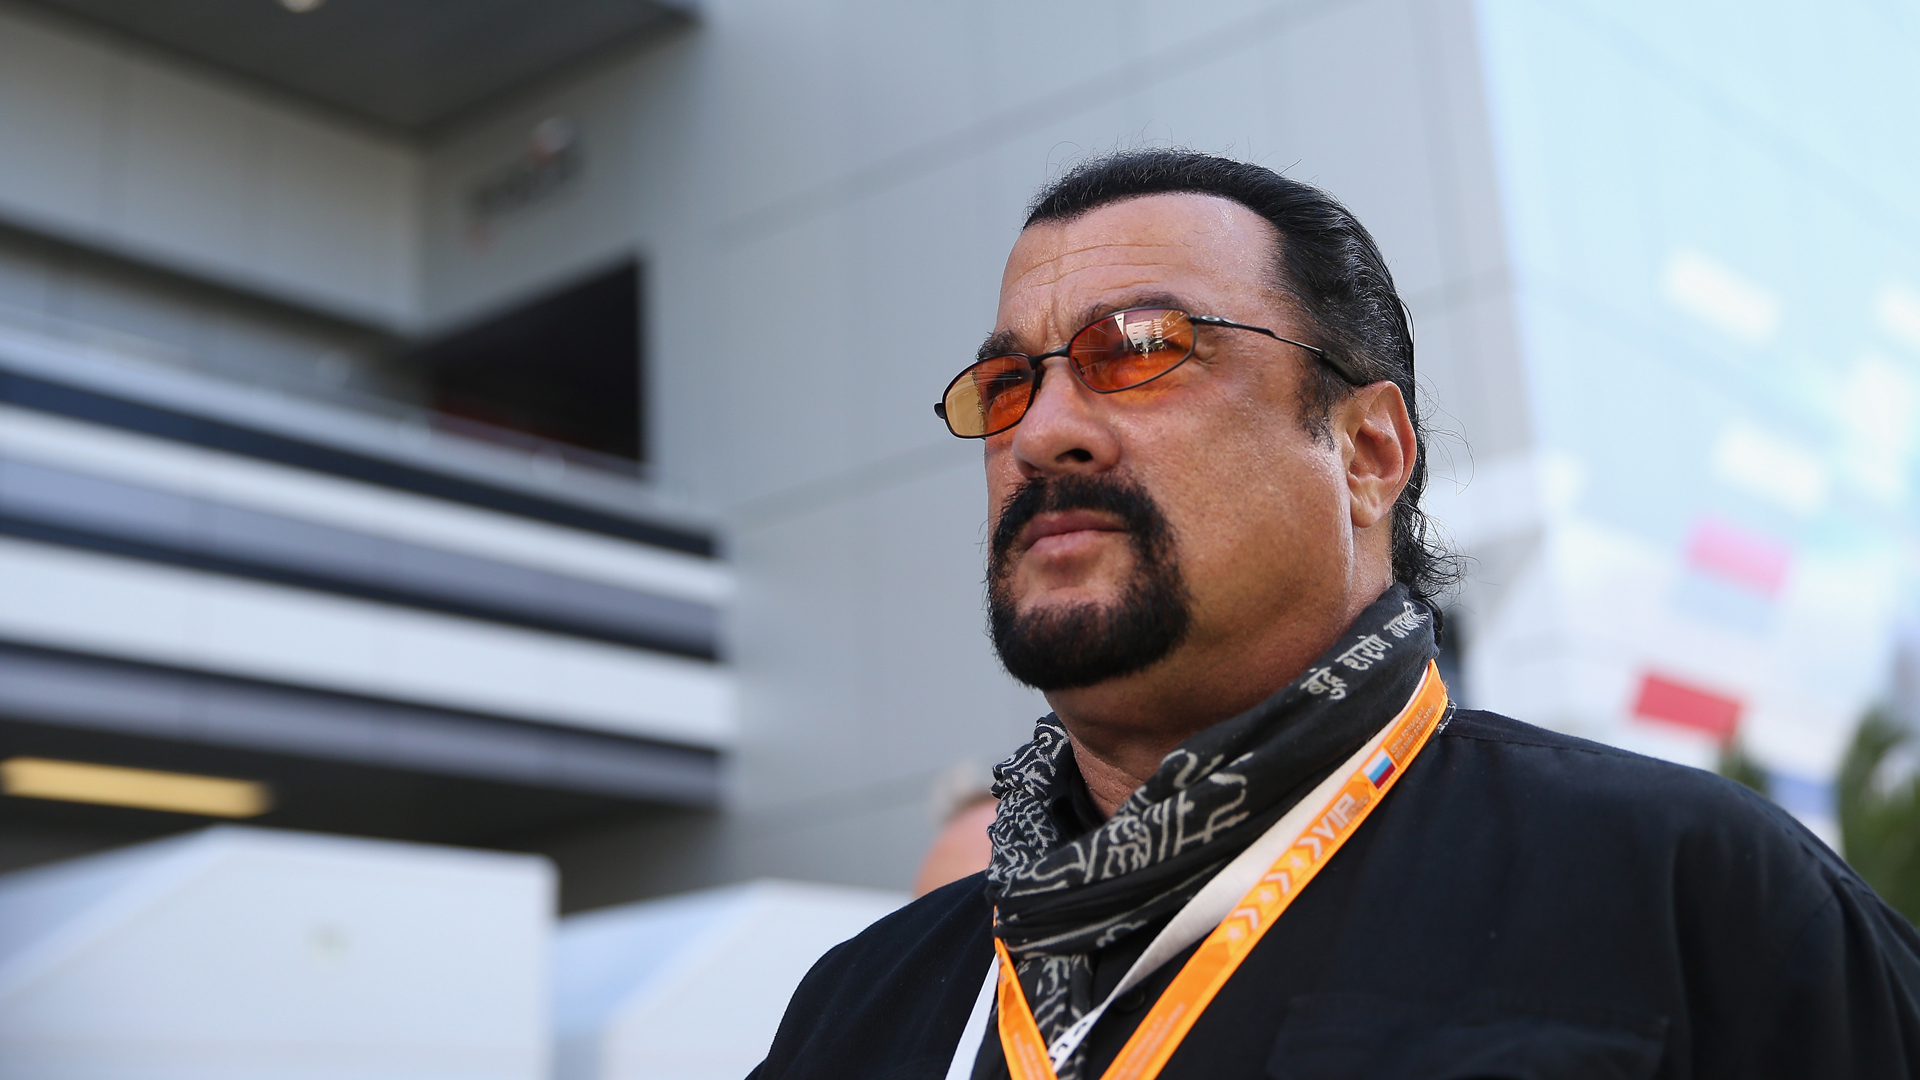 Actor Steven Seagal attends qualifying ahead of the Russian Formula One Grand Prix at Sochi Autodrom on October 11, 2014 in Sochi, Russia. (Clive Mason/Getty Images)